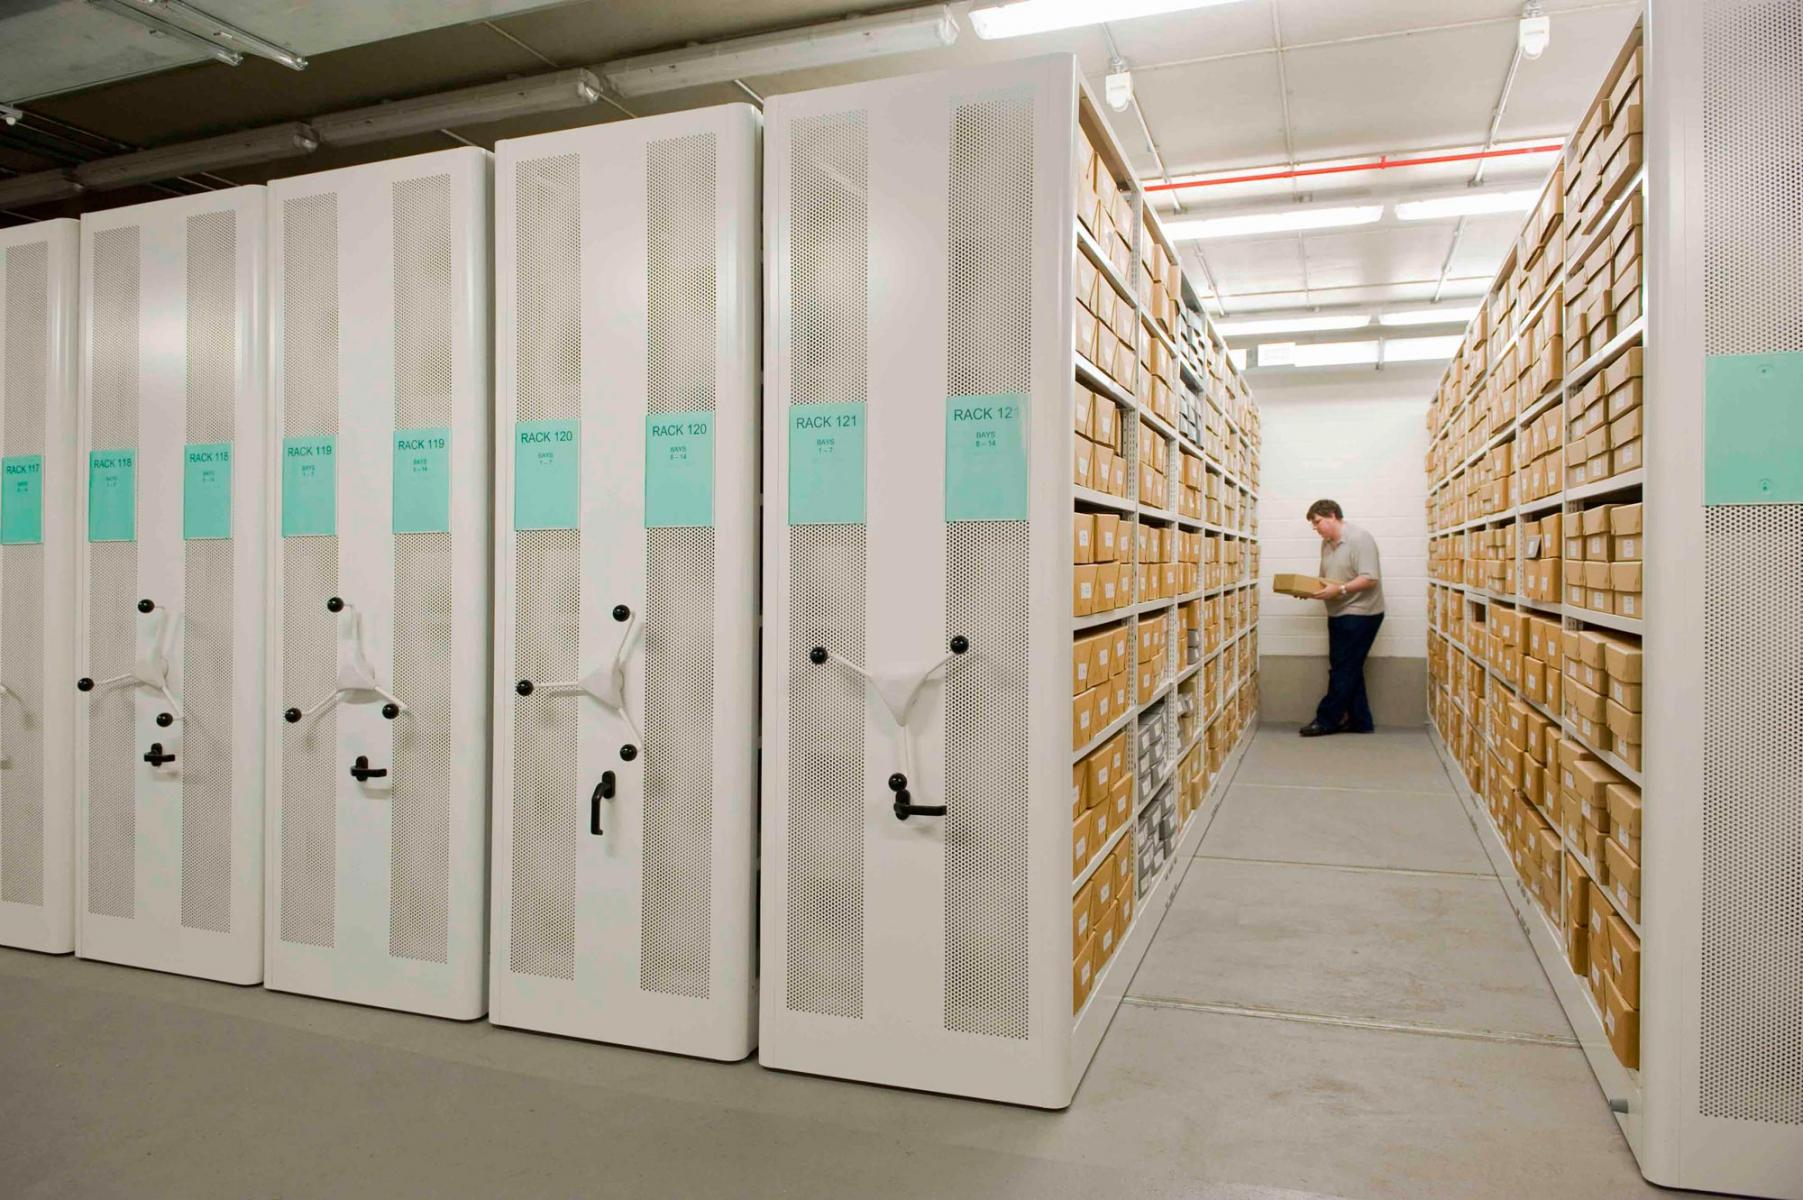 Archive repository